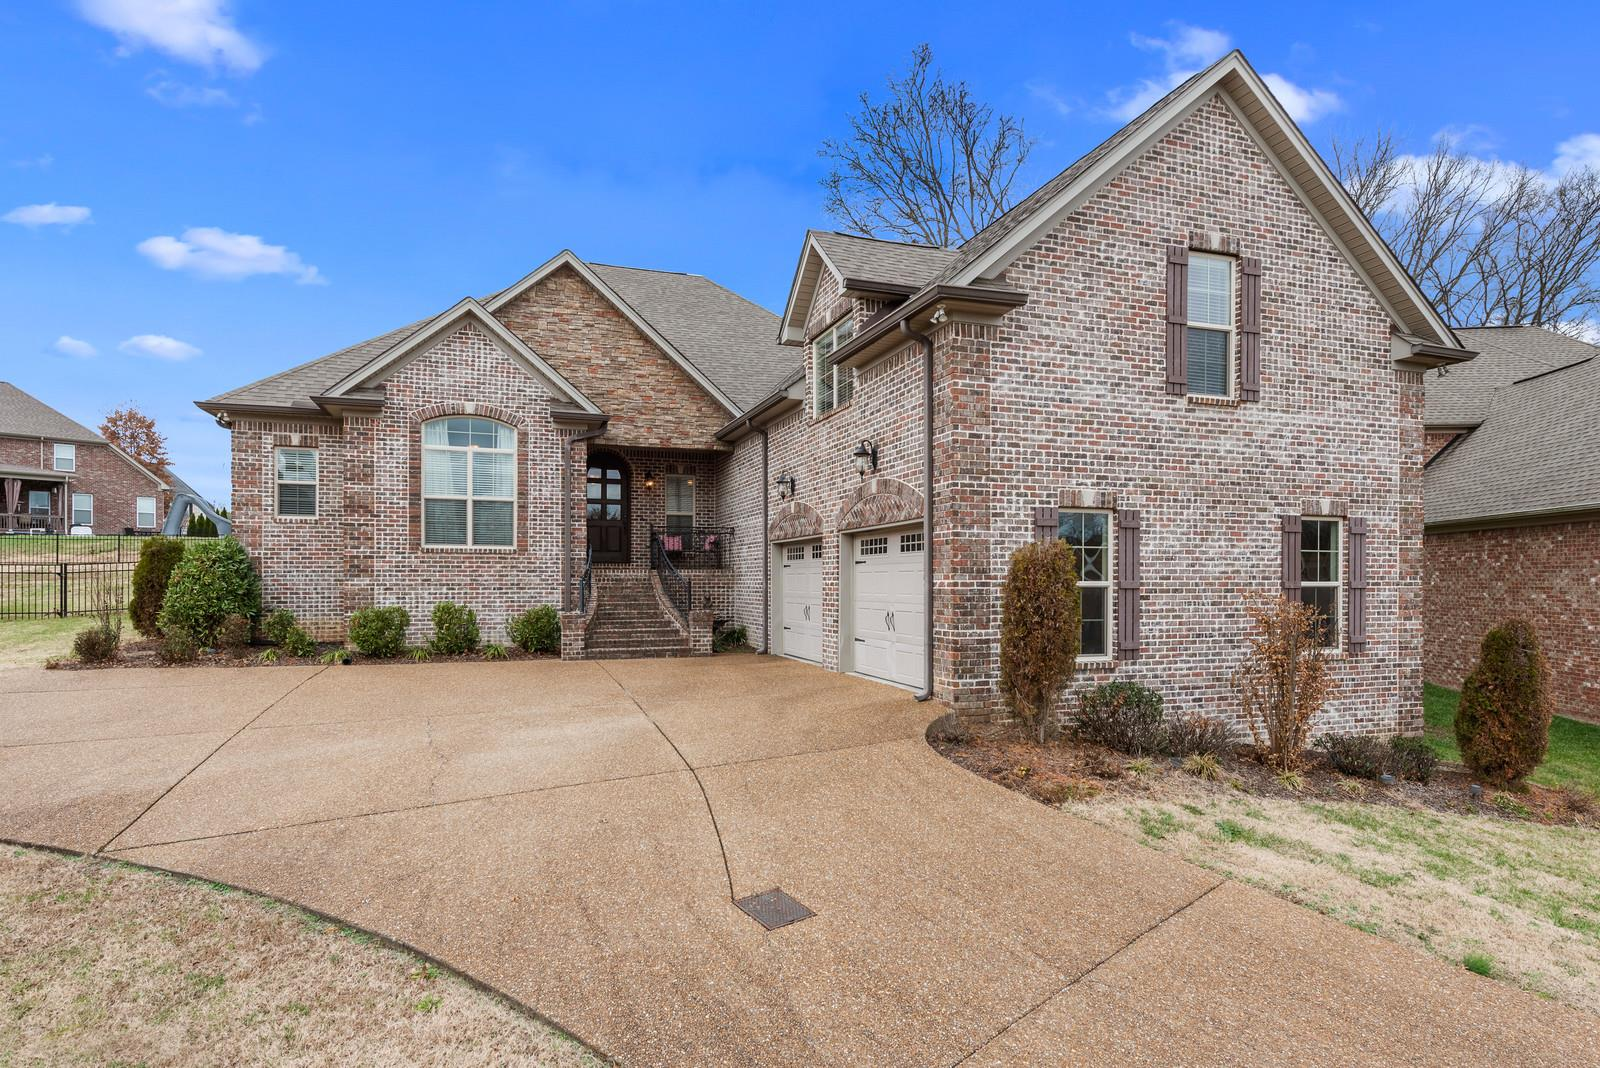 1005 Carlyle Ct Hendersonville, TN 37075